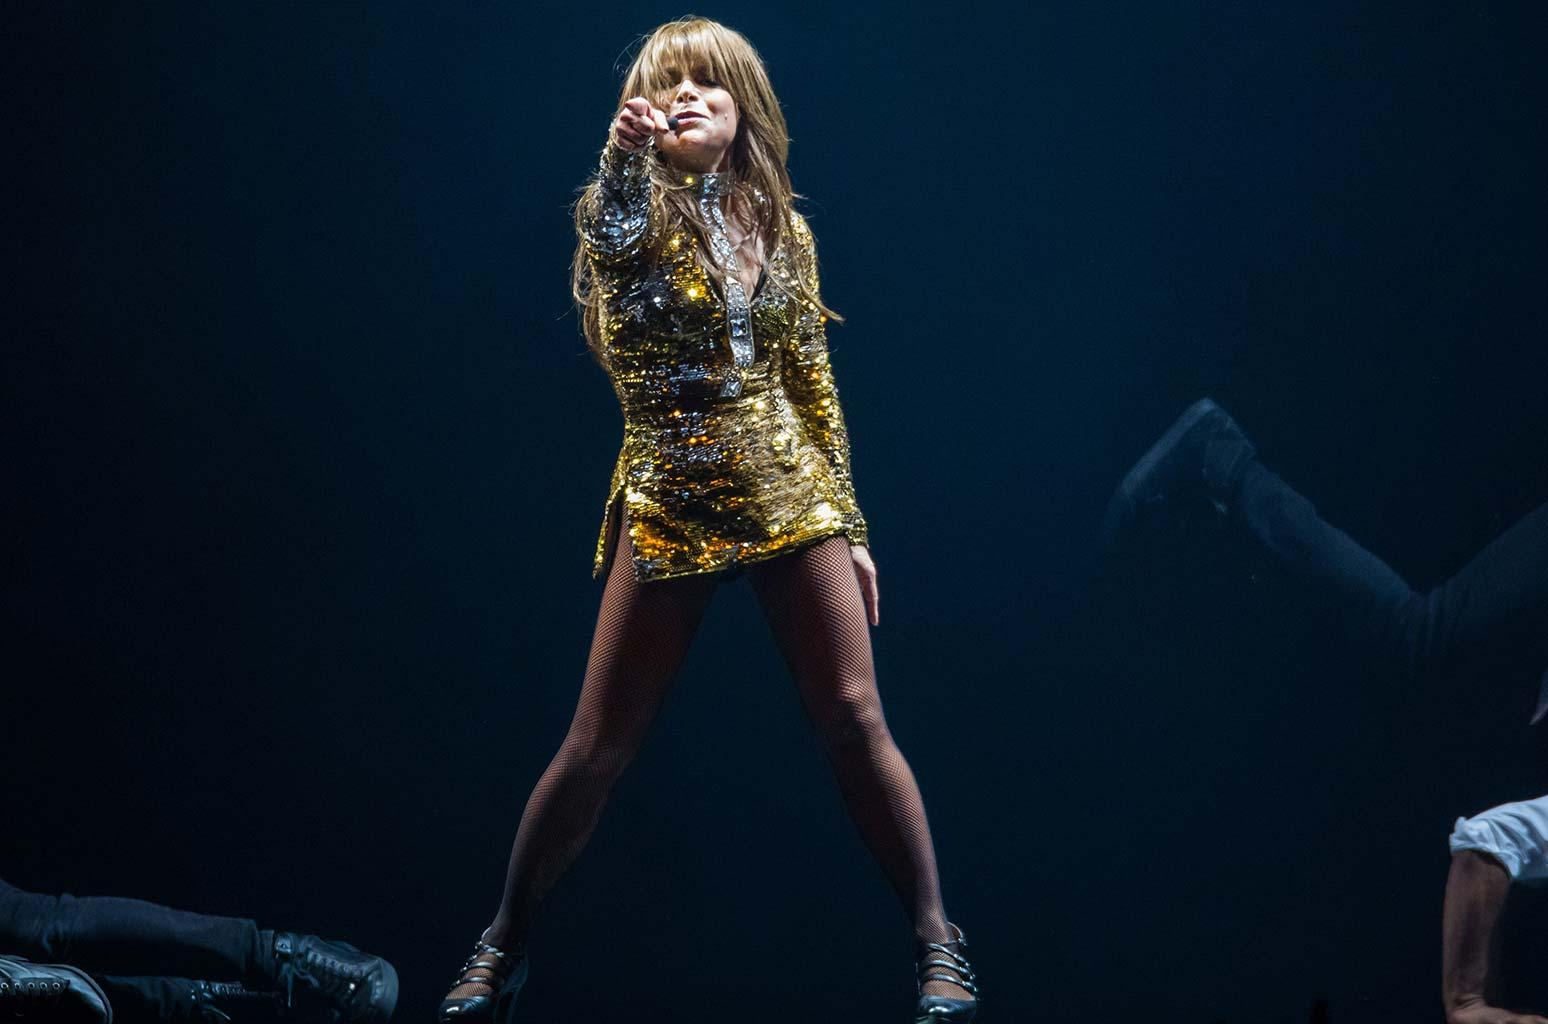 VIDEO | Paula Abdul falls heavily from stage